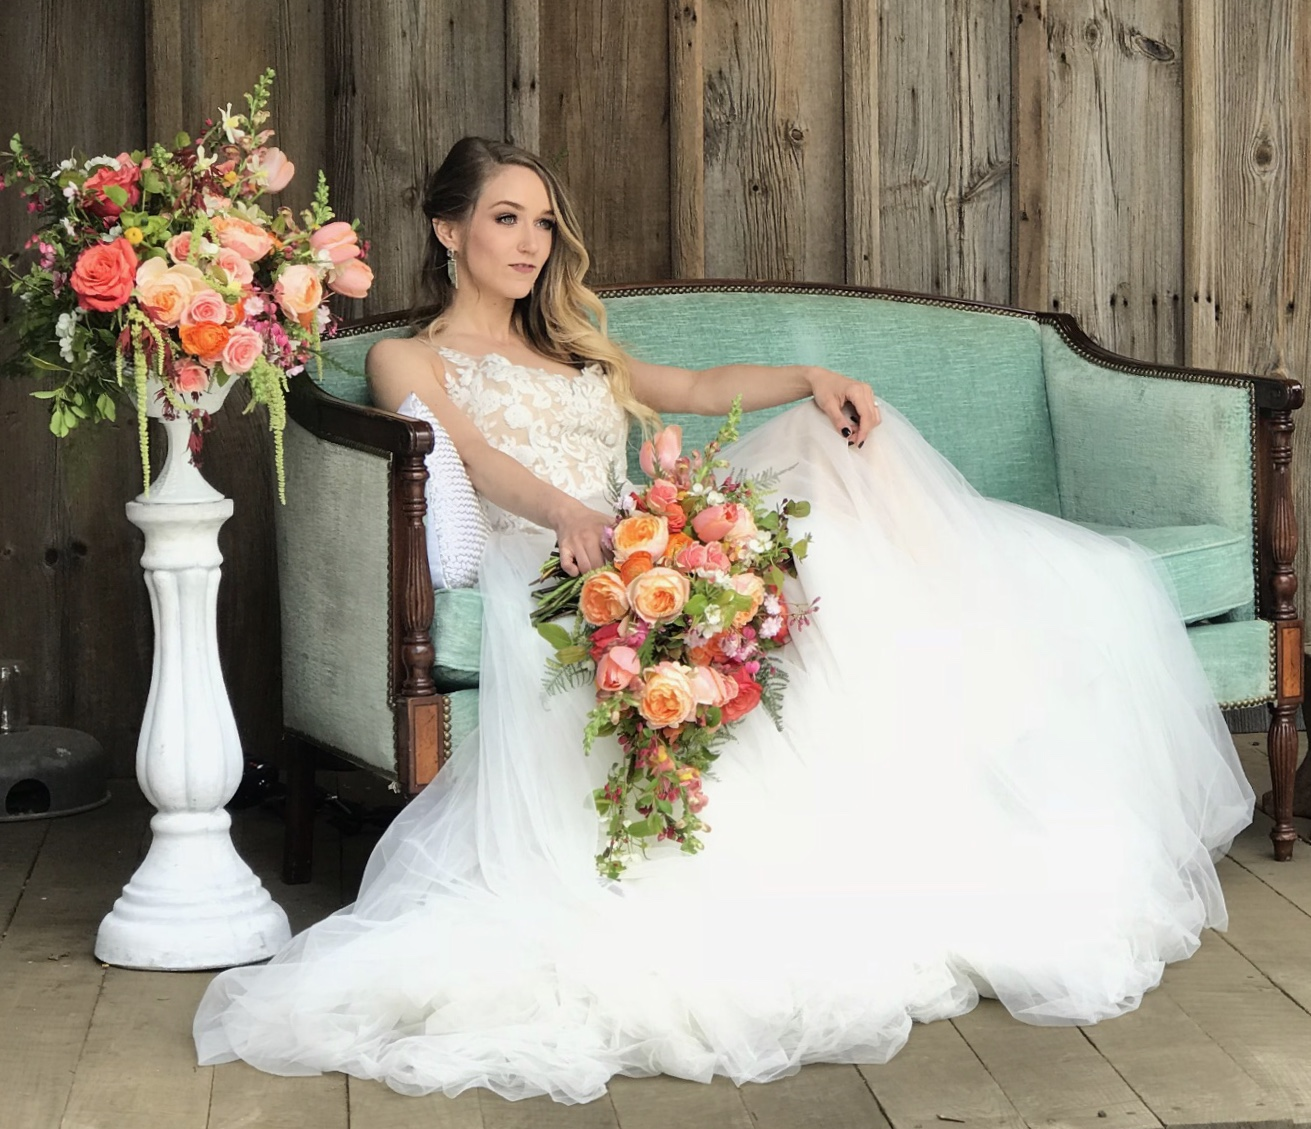 Photo by Bradley Images, Event Design by Emerald Event Design, Dress courtesy of Amanda Ritchie Bridal, Flowers by Wash Day Floral